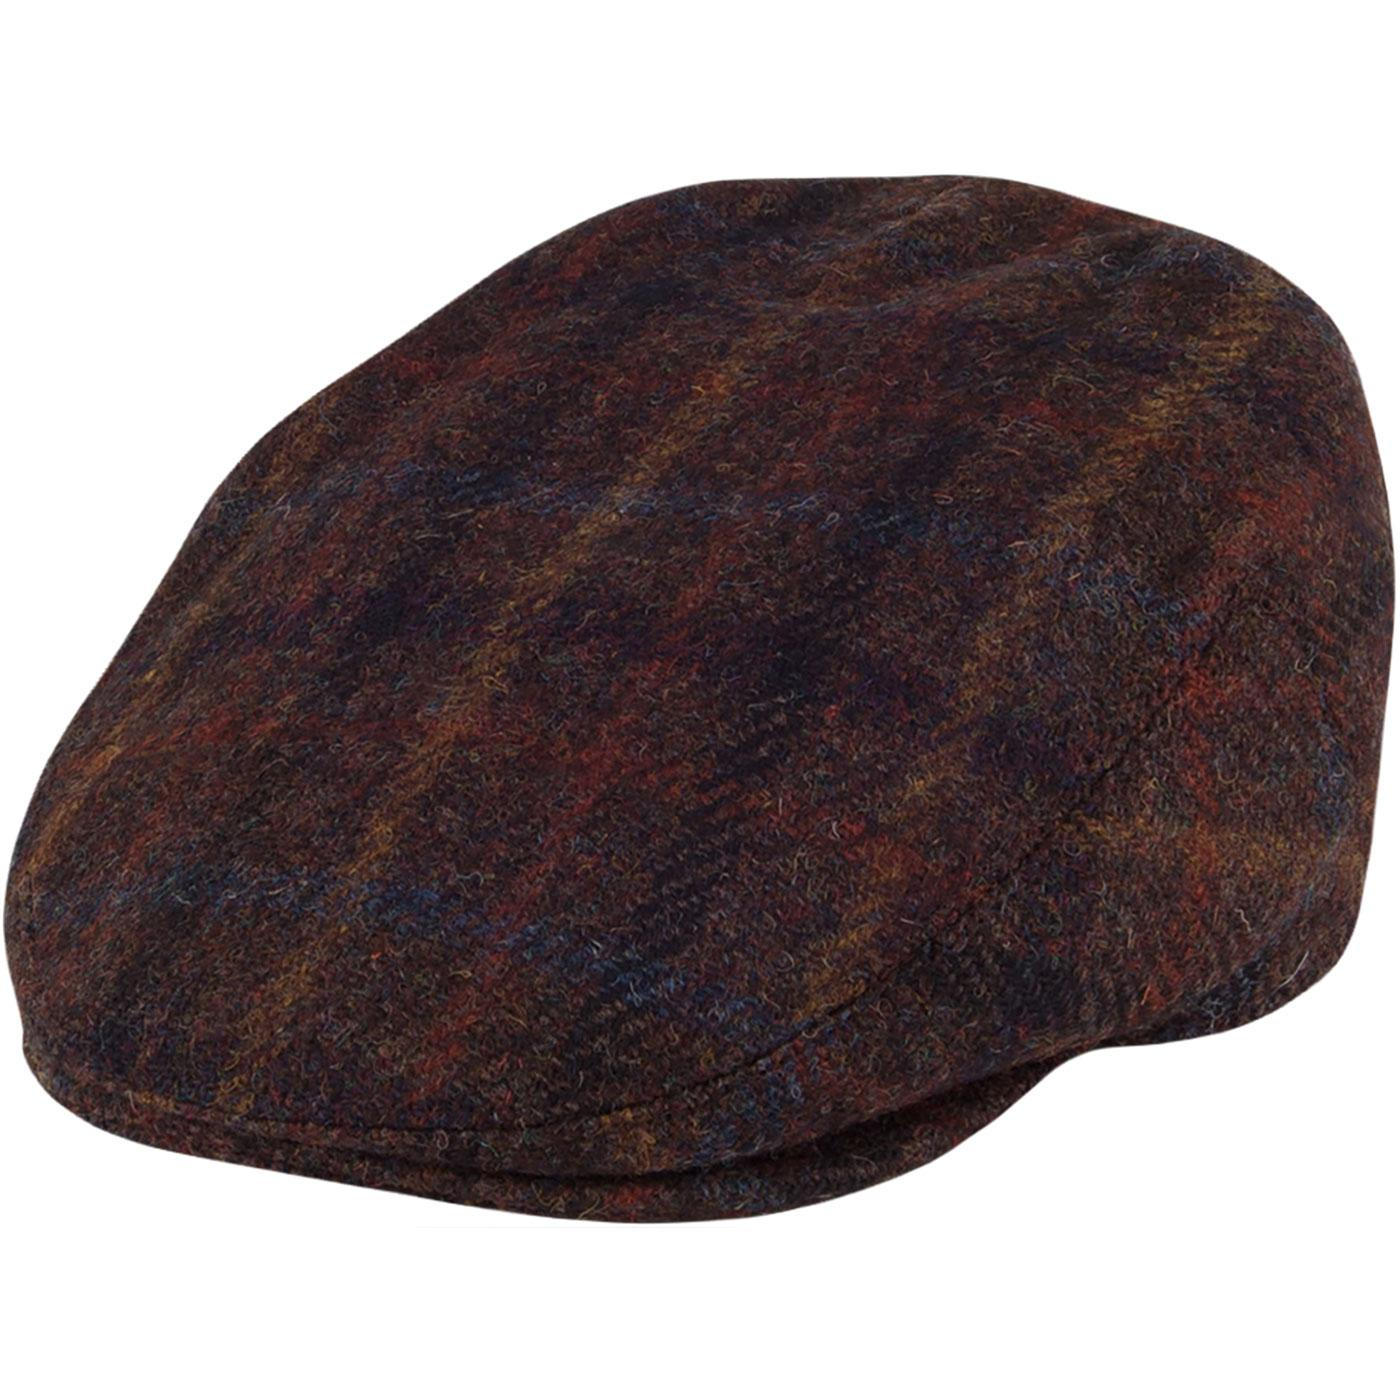 FAILSWORTH Stornoway Harris Tweed Flat Cap - BROWN